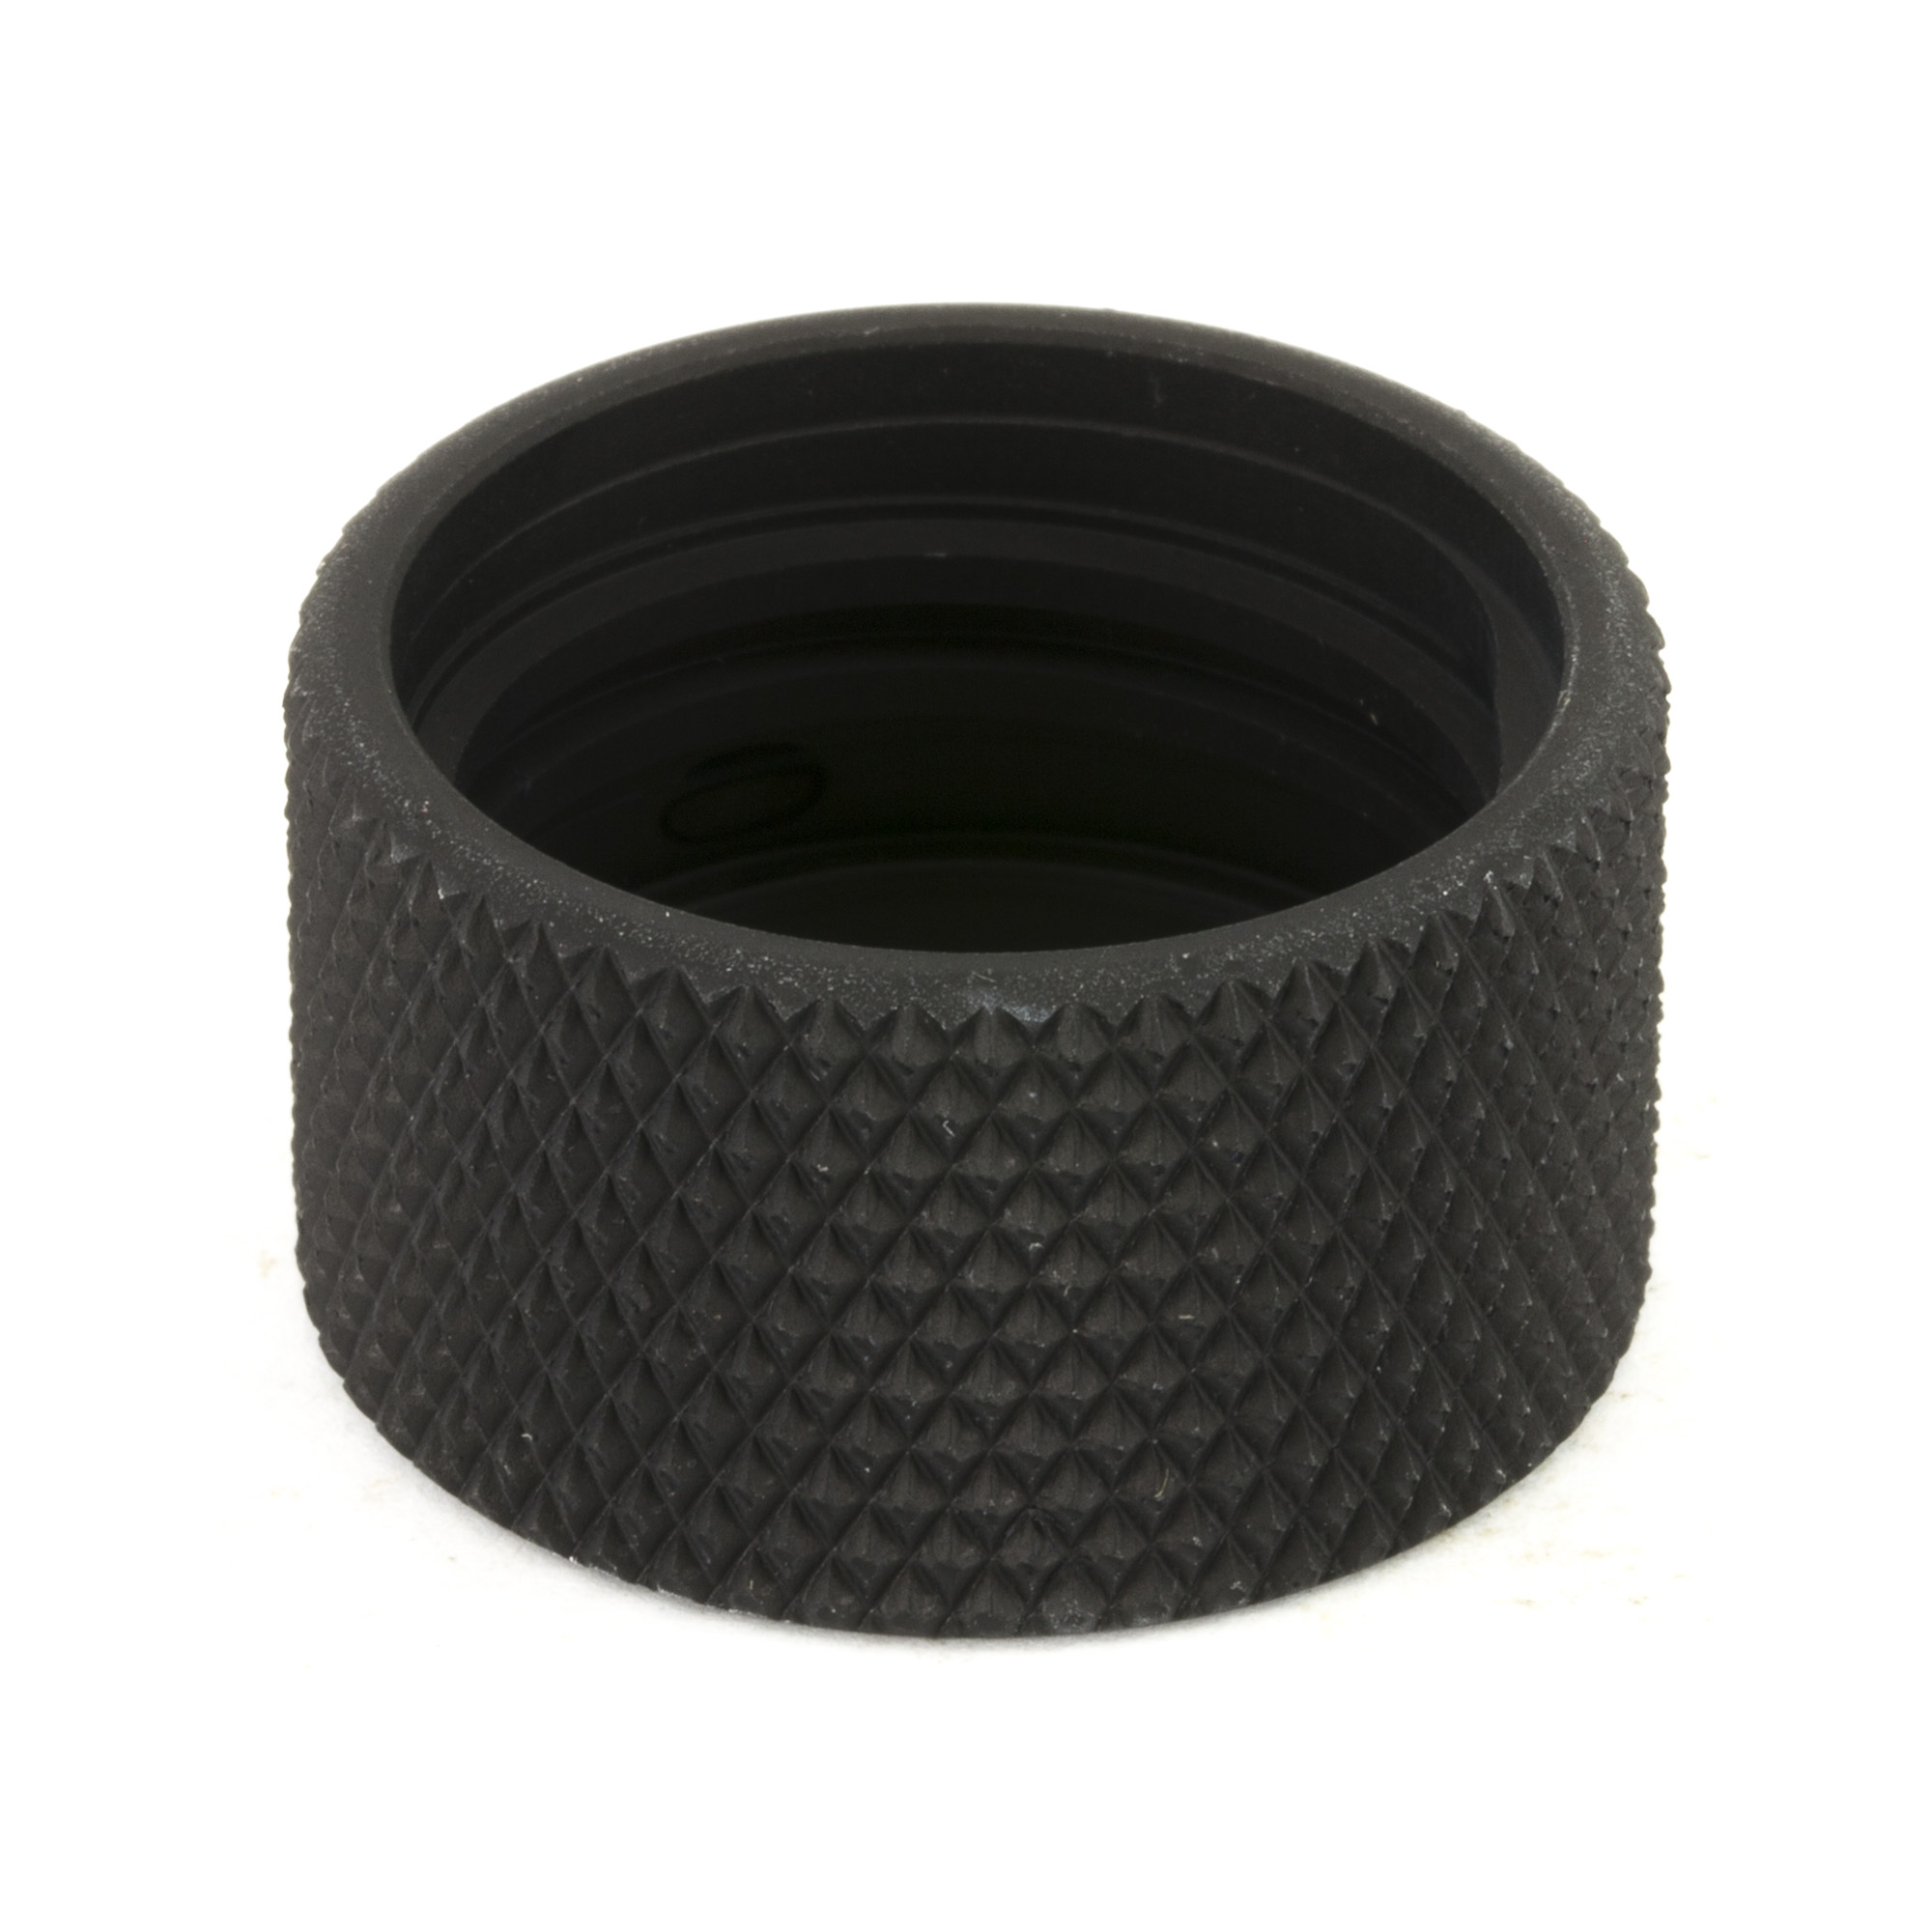 This protective cap will keep the ACME threads on your Q.D. flash hiders and mounts from becoming dirty or damaged when your suppressor is not in use.